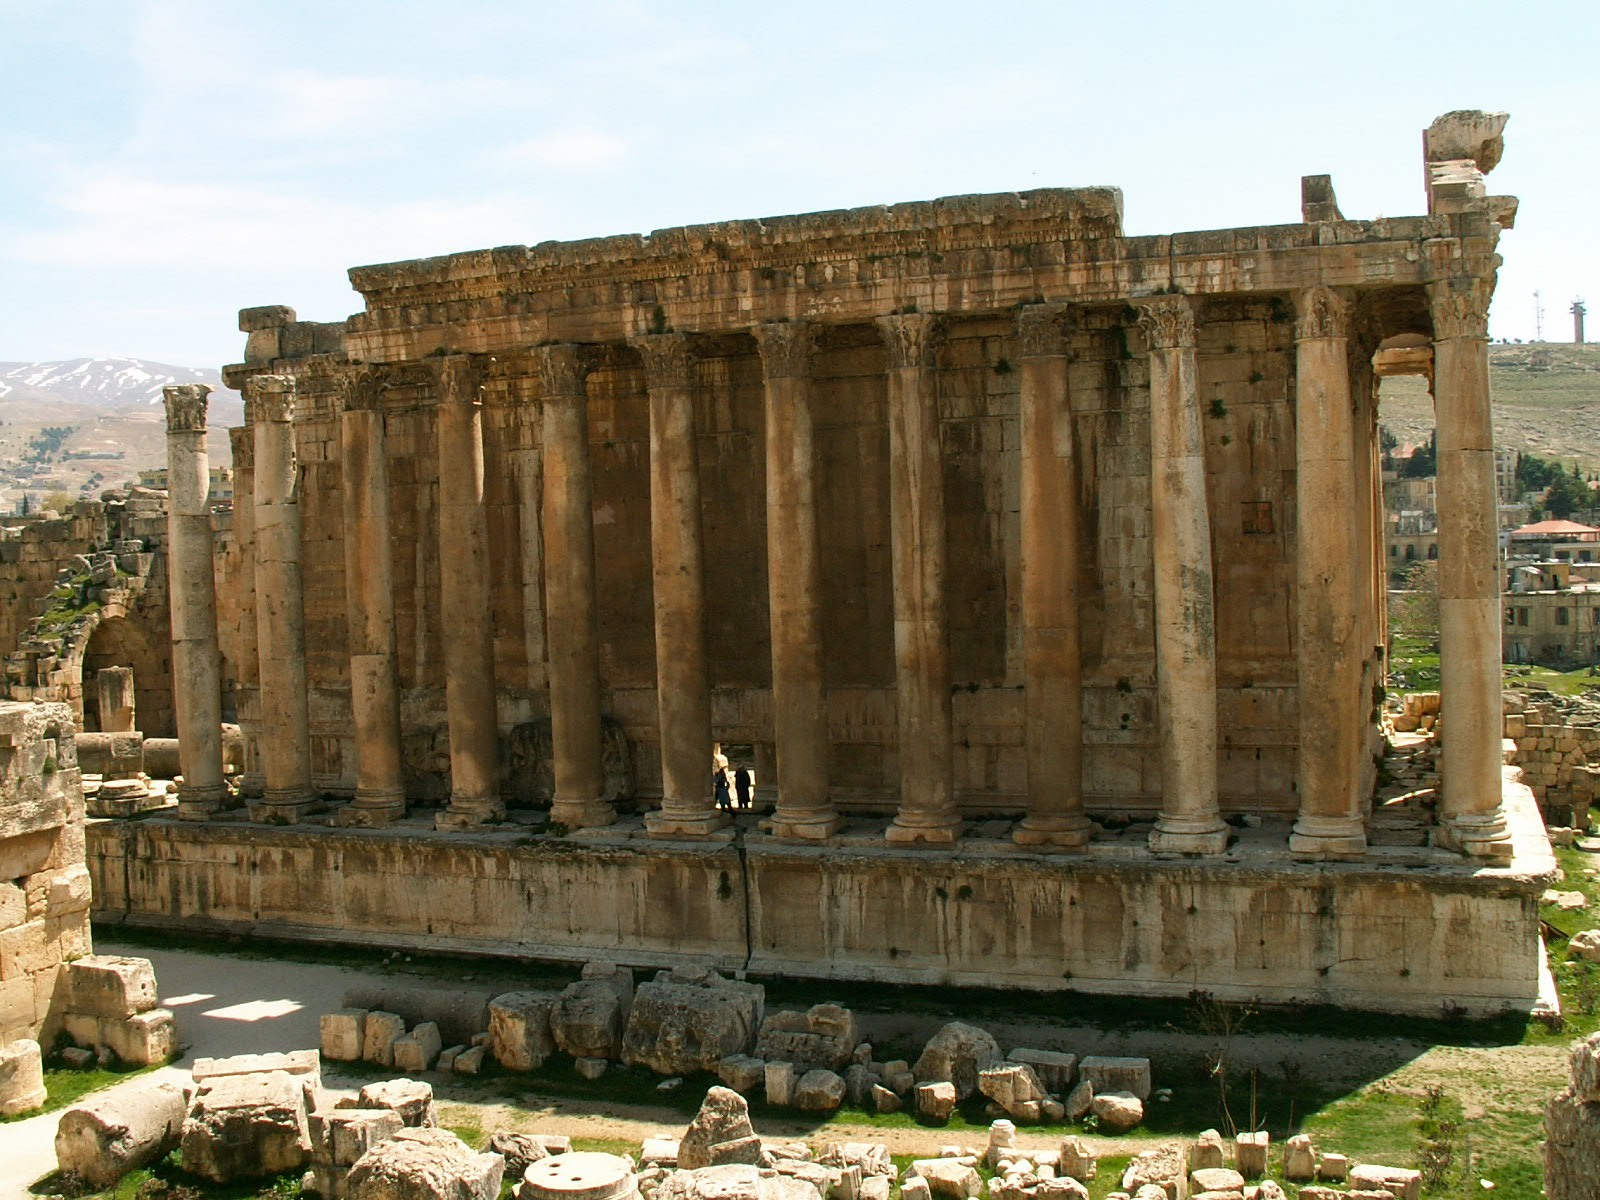 Temple of Jupiter at Baalbek